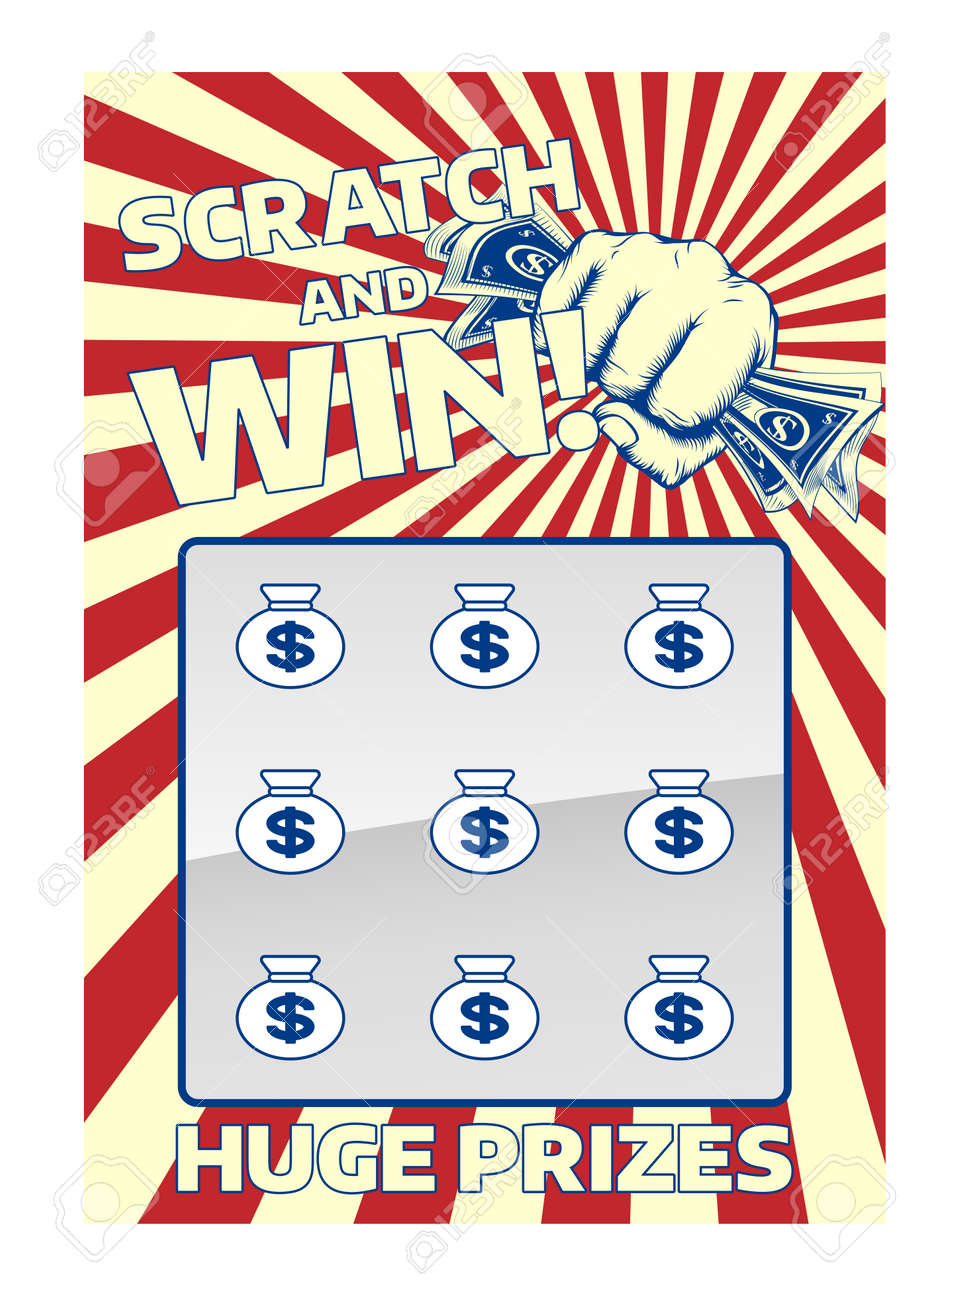 A lottery instant scratch and win scratchcard featuring a fist holding cash - 54229218